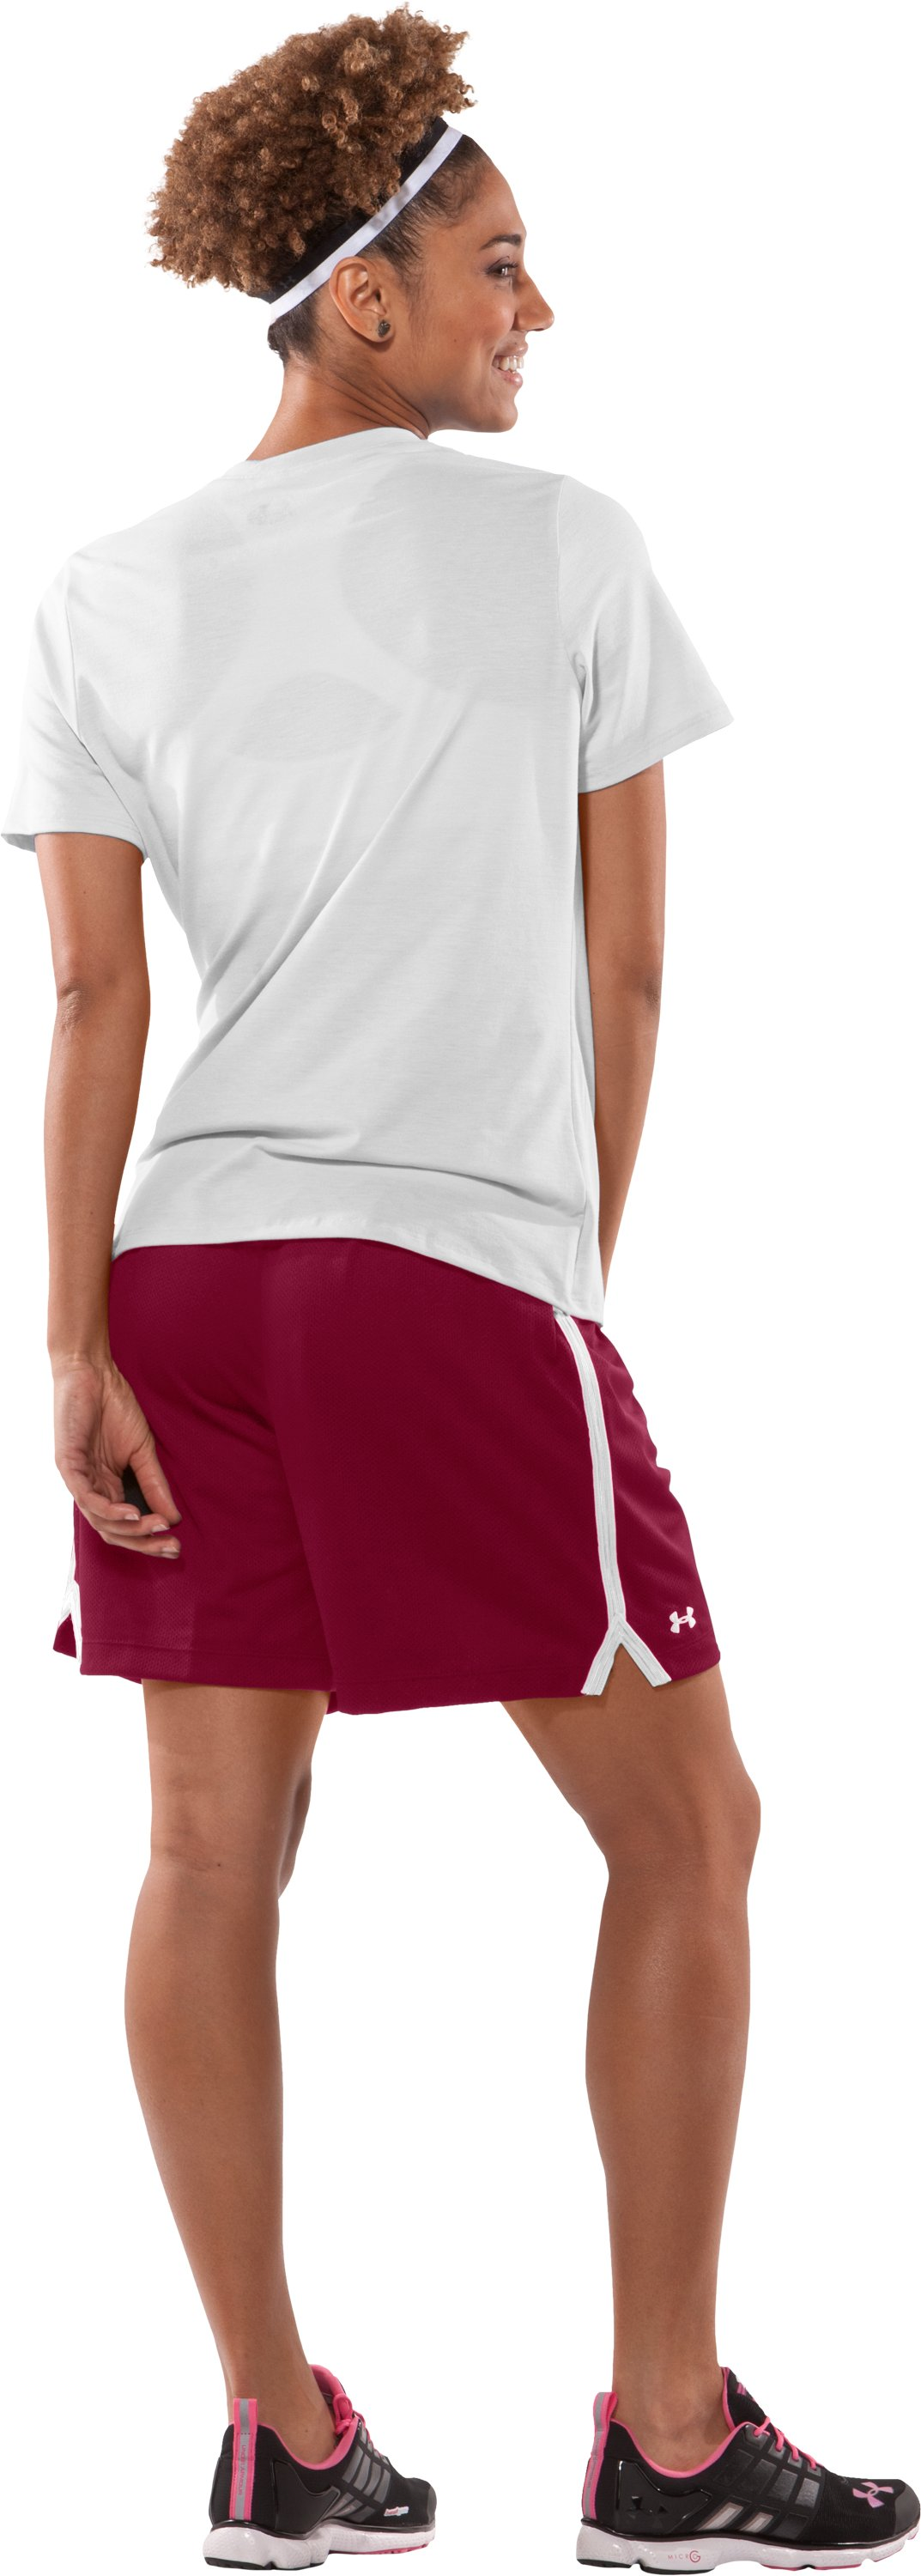 "Women's Skill 6"" Mesh Shorts, Cardinal, Back"